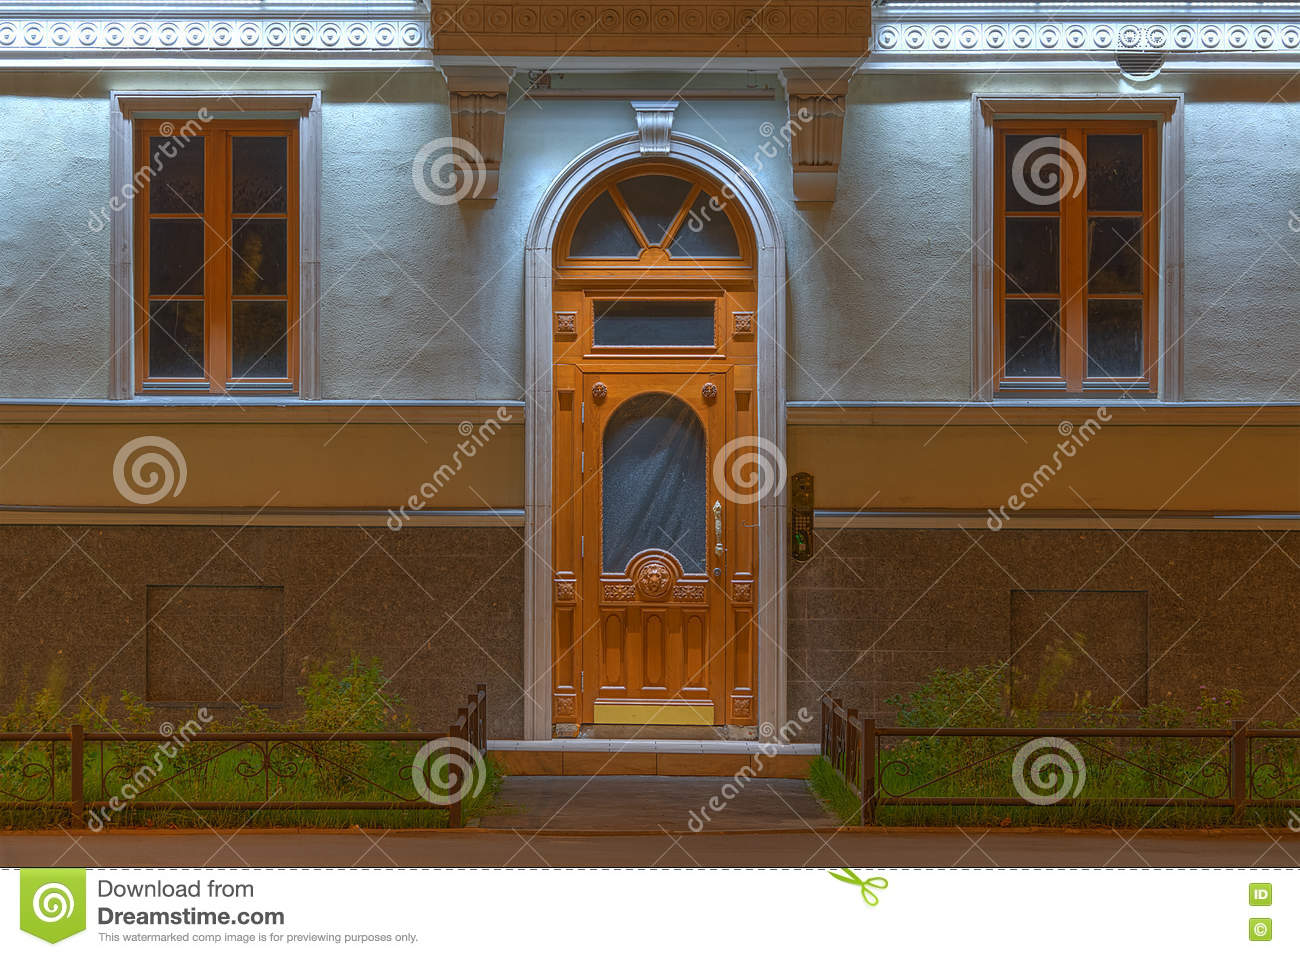 Windows And Door On Night Facade Of Apartment Building Stock Photo